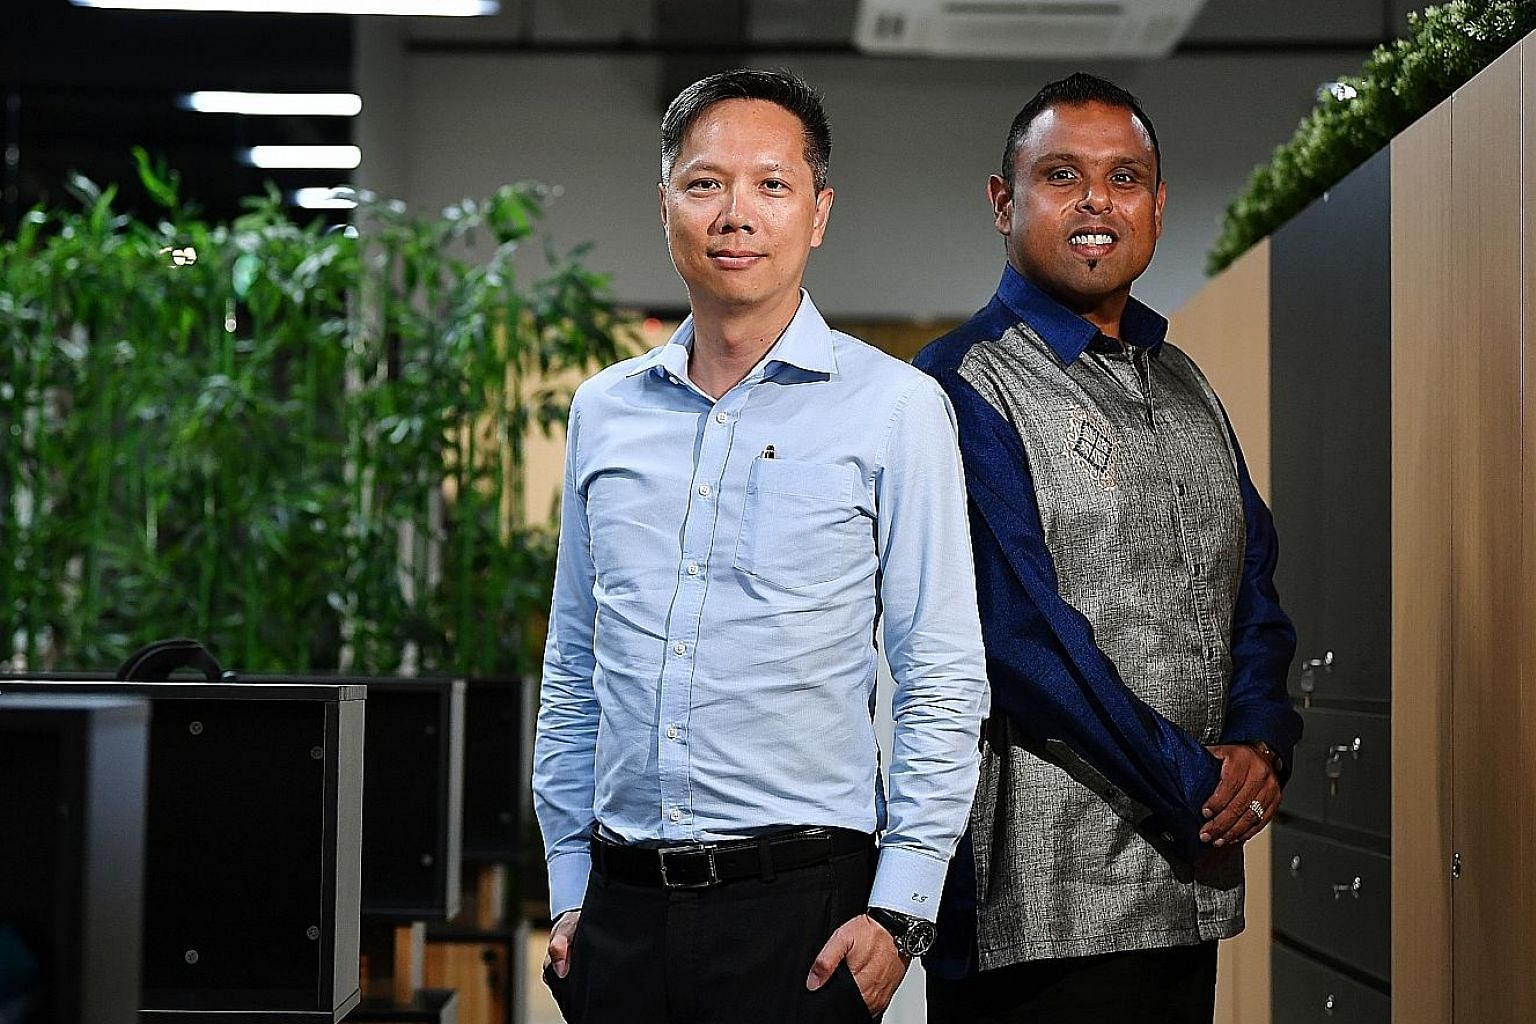 The idea for the Alliance of Guest Workers Outreach came out of discussions that the Reverend Ezekiel Tan (left) had last year with the Reverend Samuel Gift Stephen